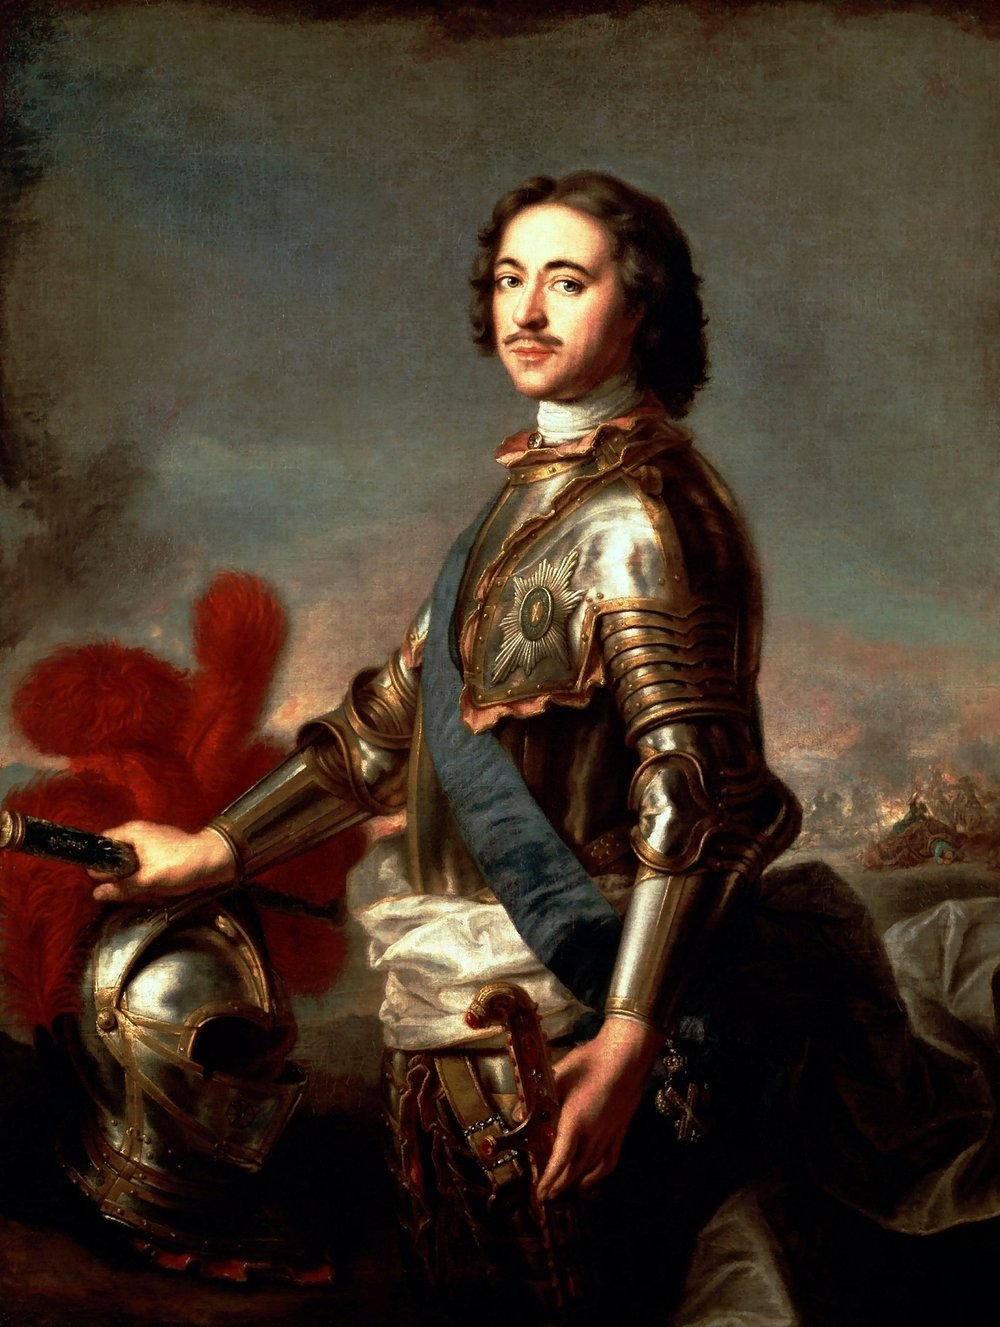 Copy of J.-M. Nattier, Portrait of Peter the Great, 1717